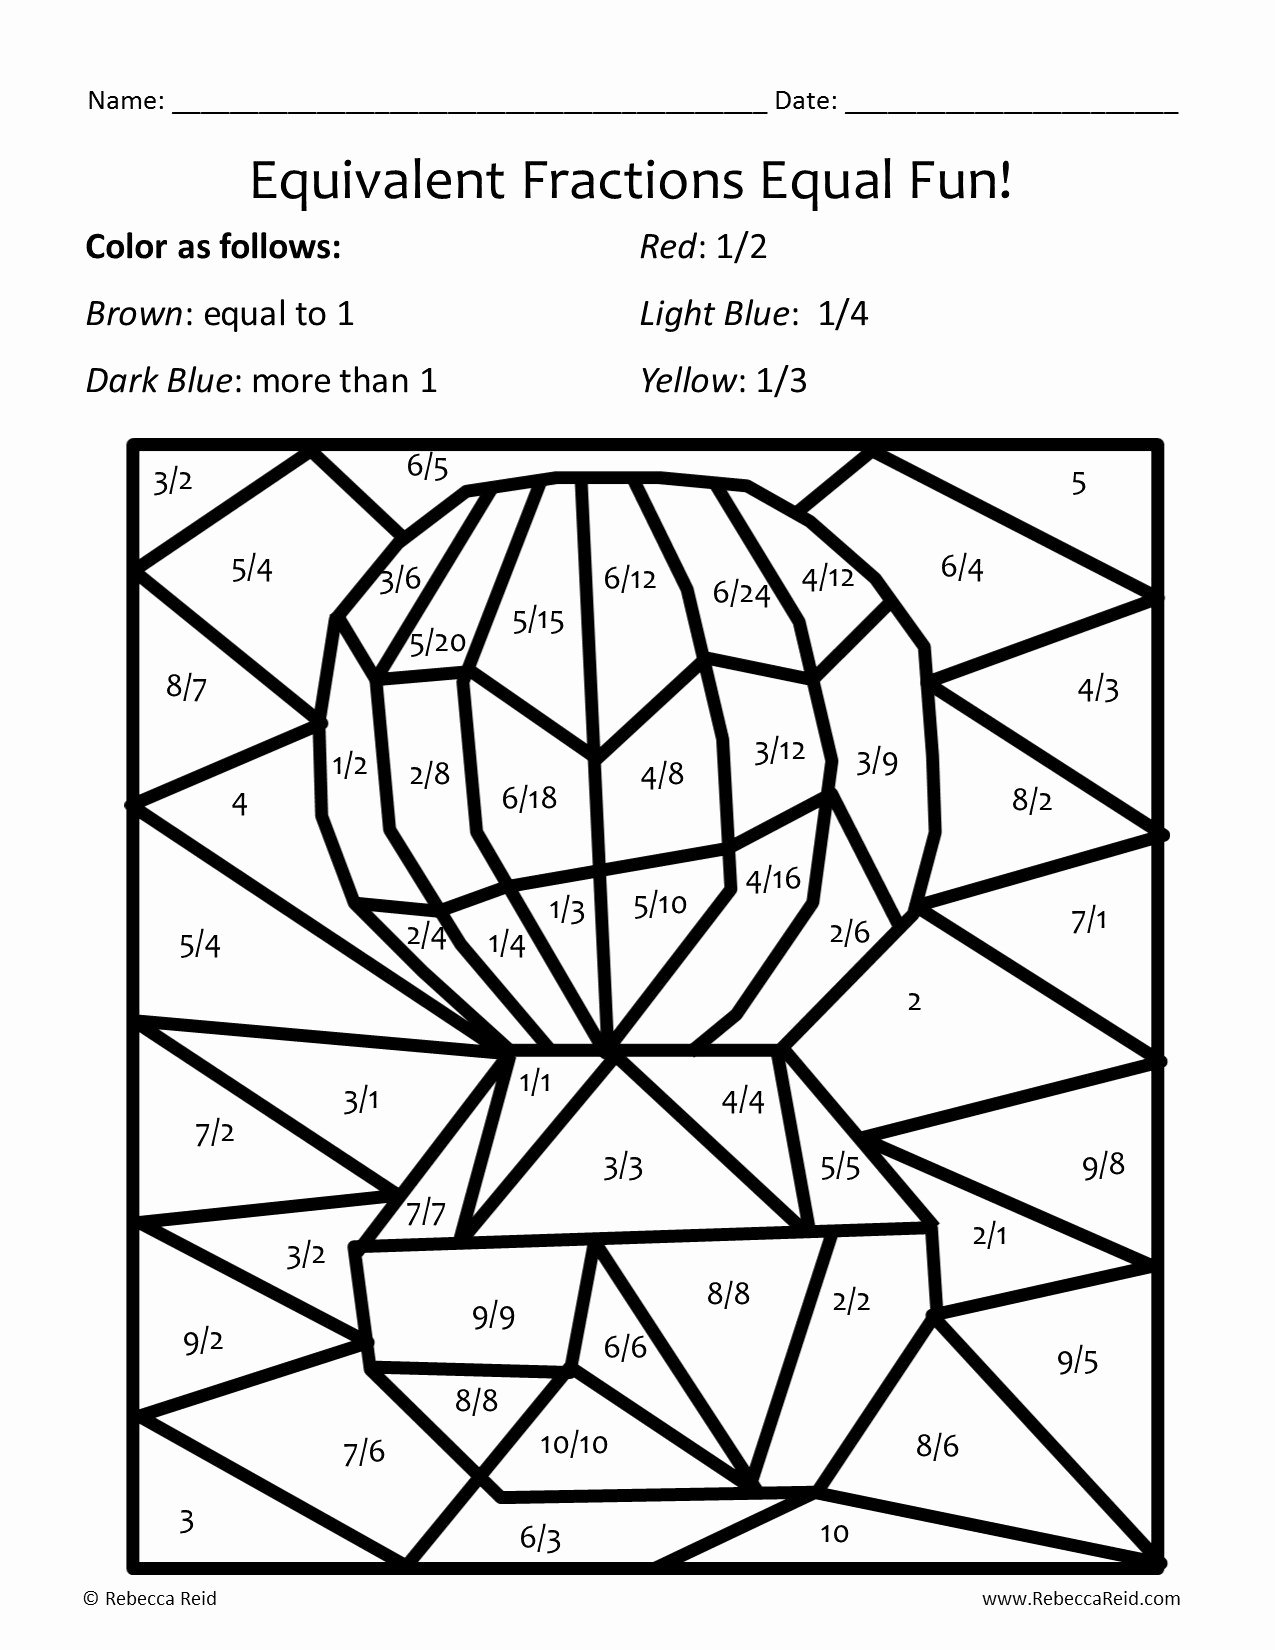 Fraction Coloring Worksheets 5th Grade Ideas Equivalent Fractions Image Incredible Fraction Coloring